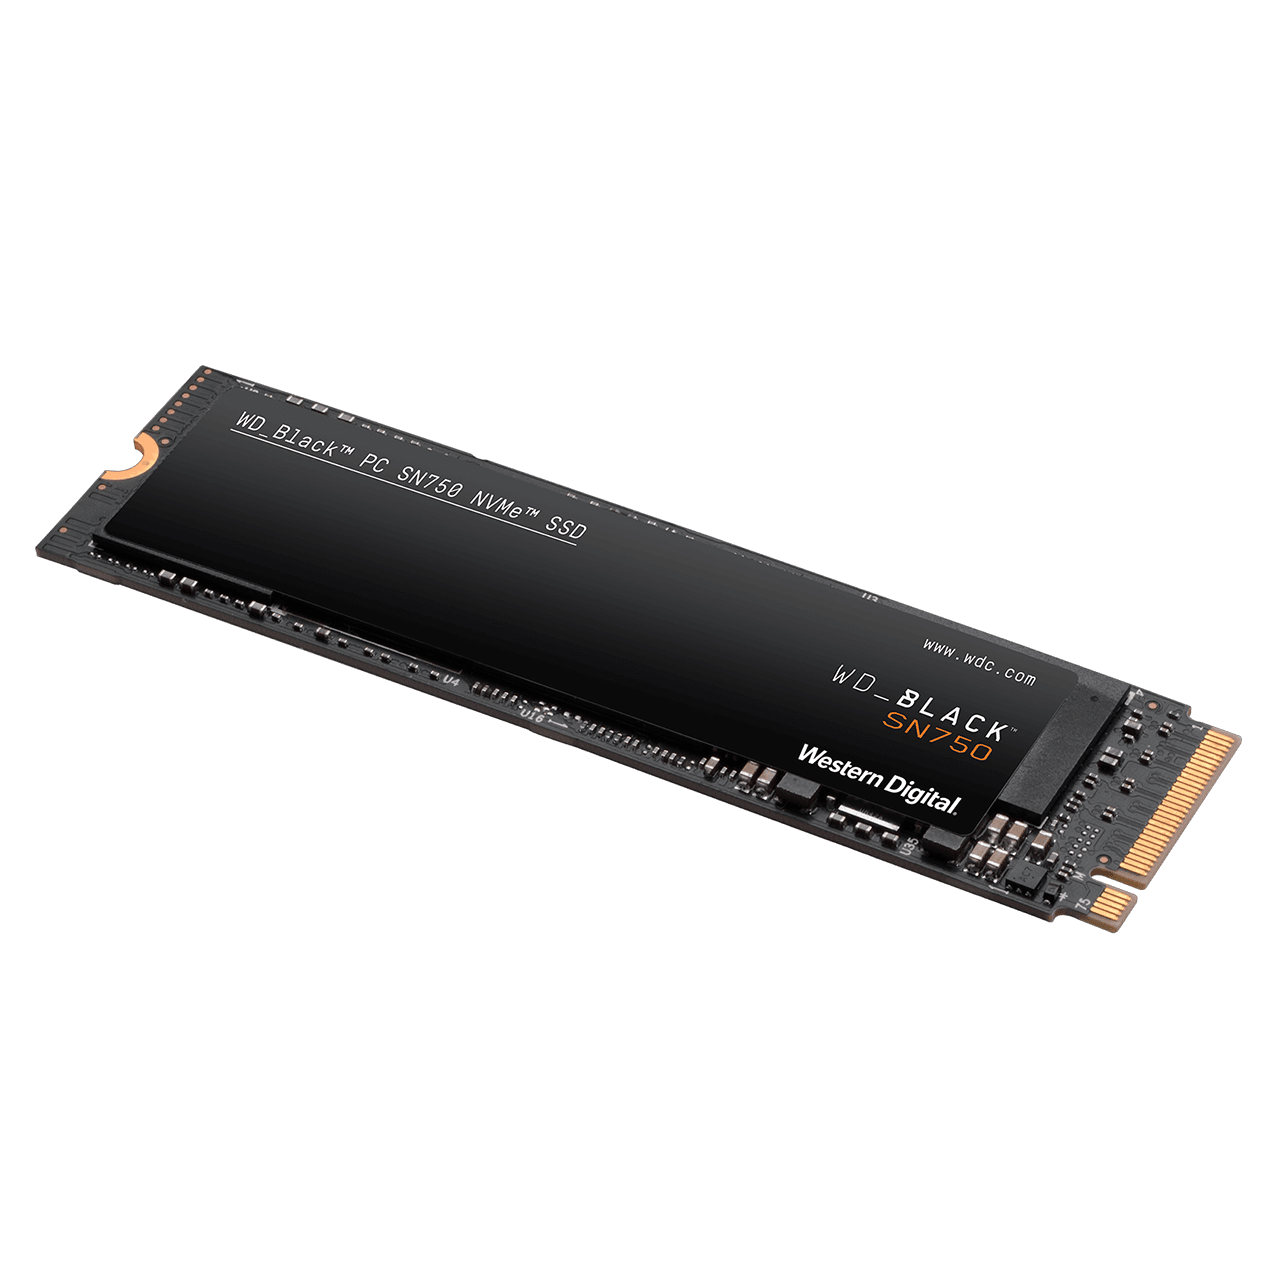 New WD Accounts: 1TB WD Black SN750 NVMe M.2 2280 Internal Solid State Drive